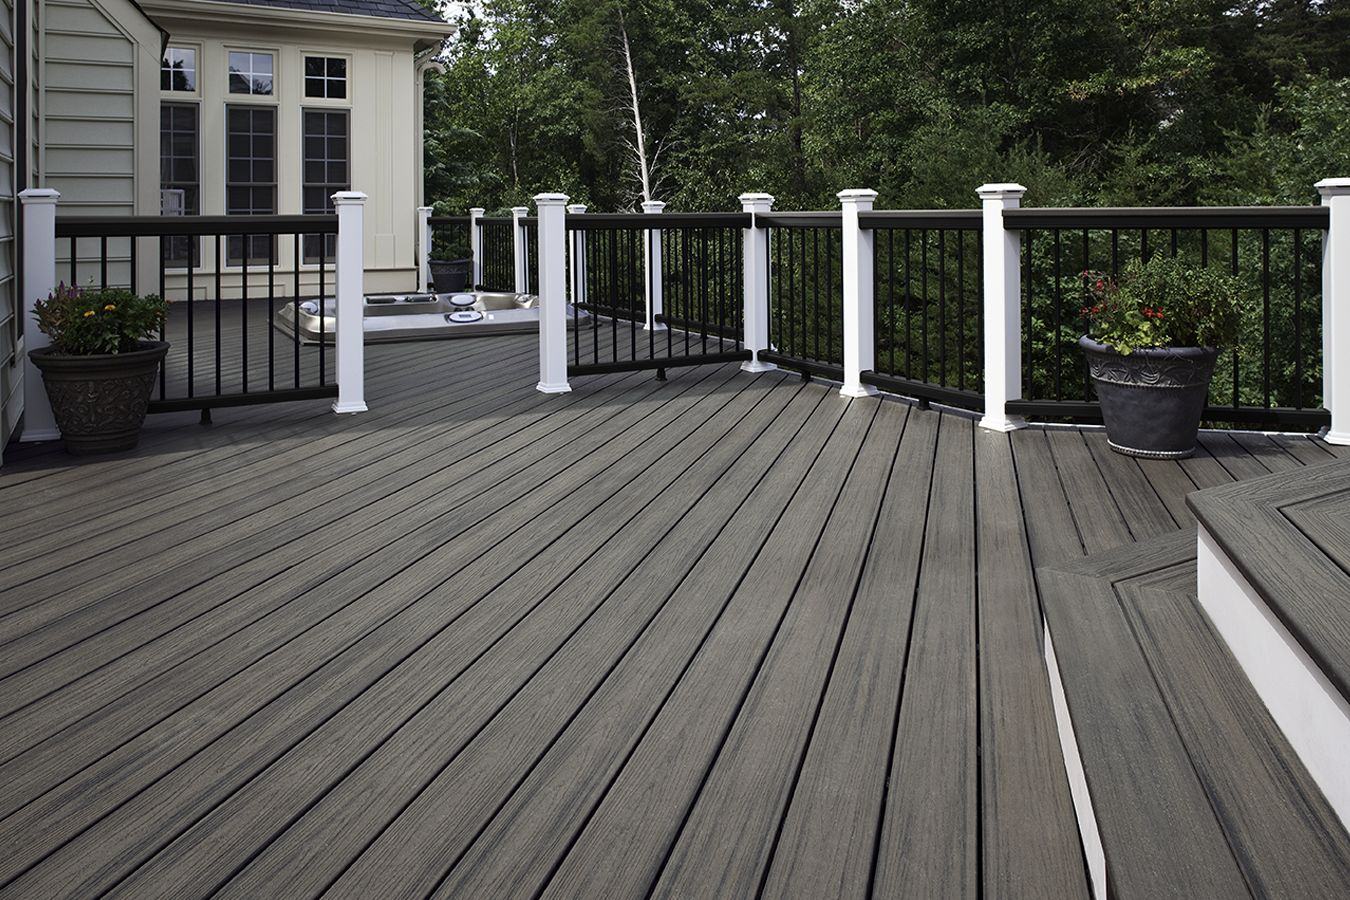 Plymouth Deck Builder Contractor Kingston Marshfield Scituate MA